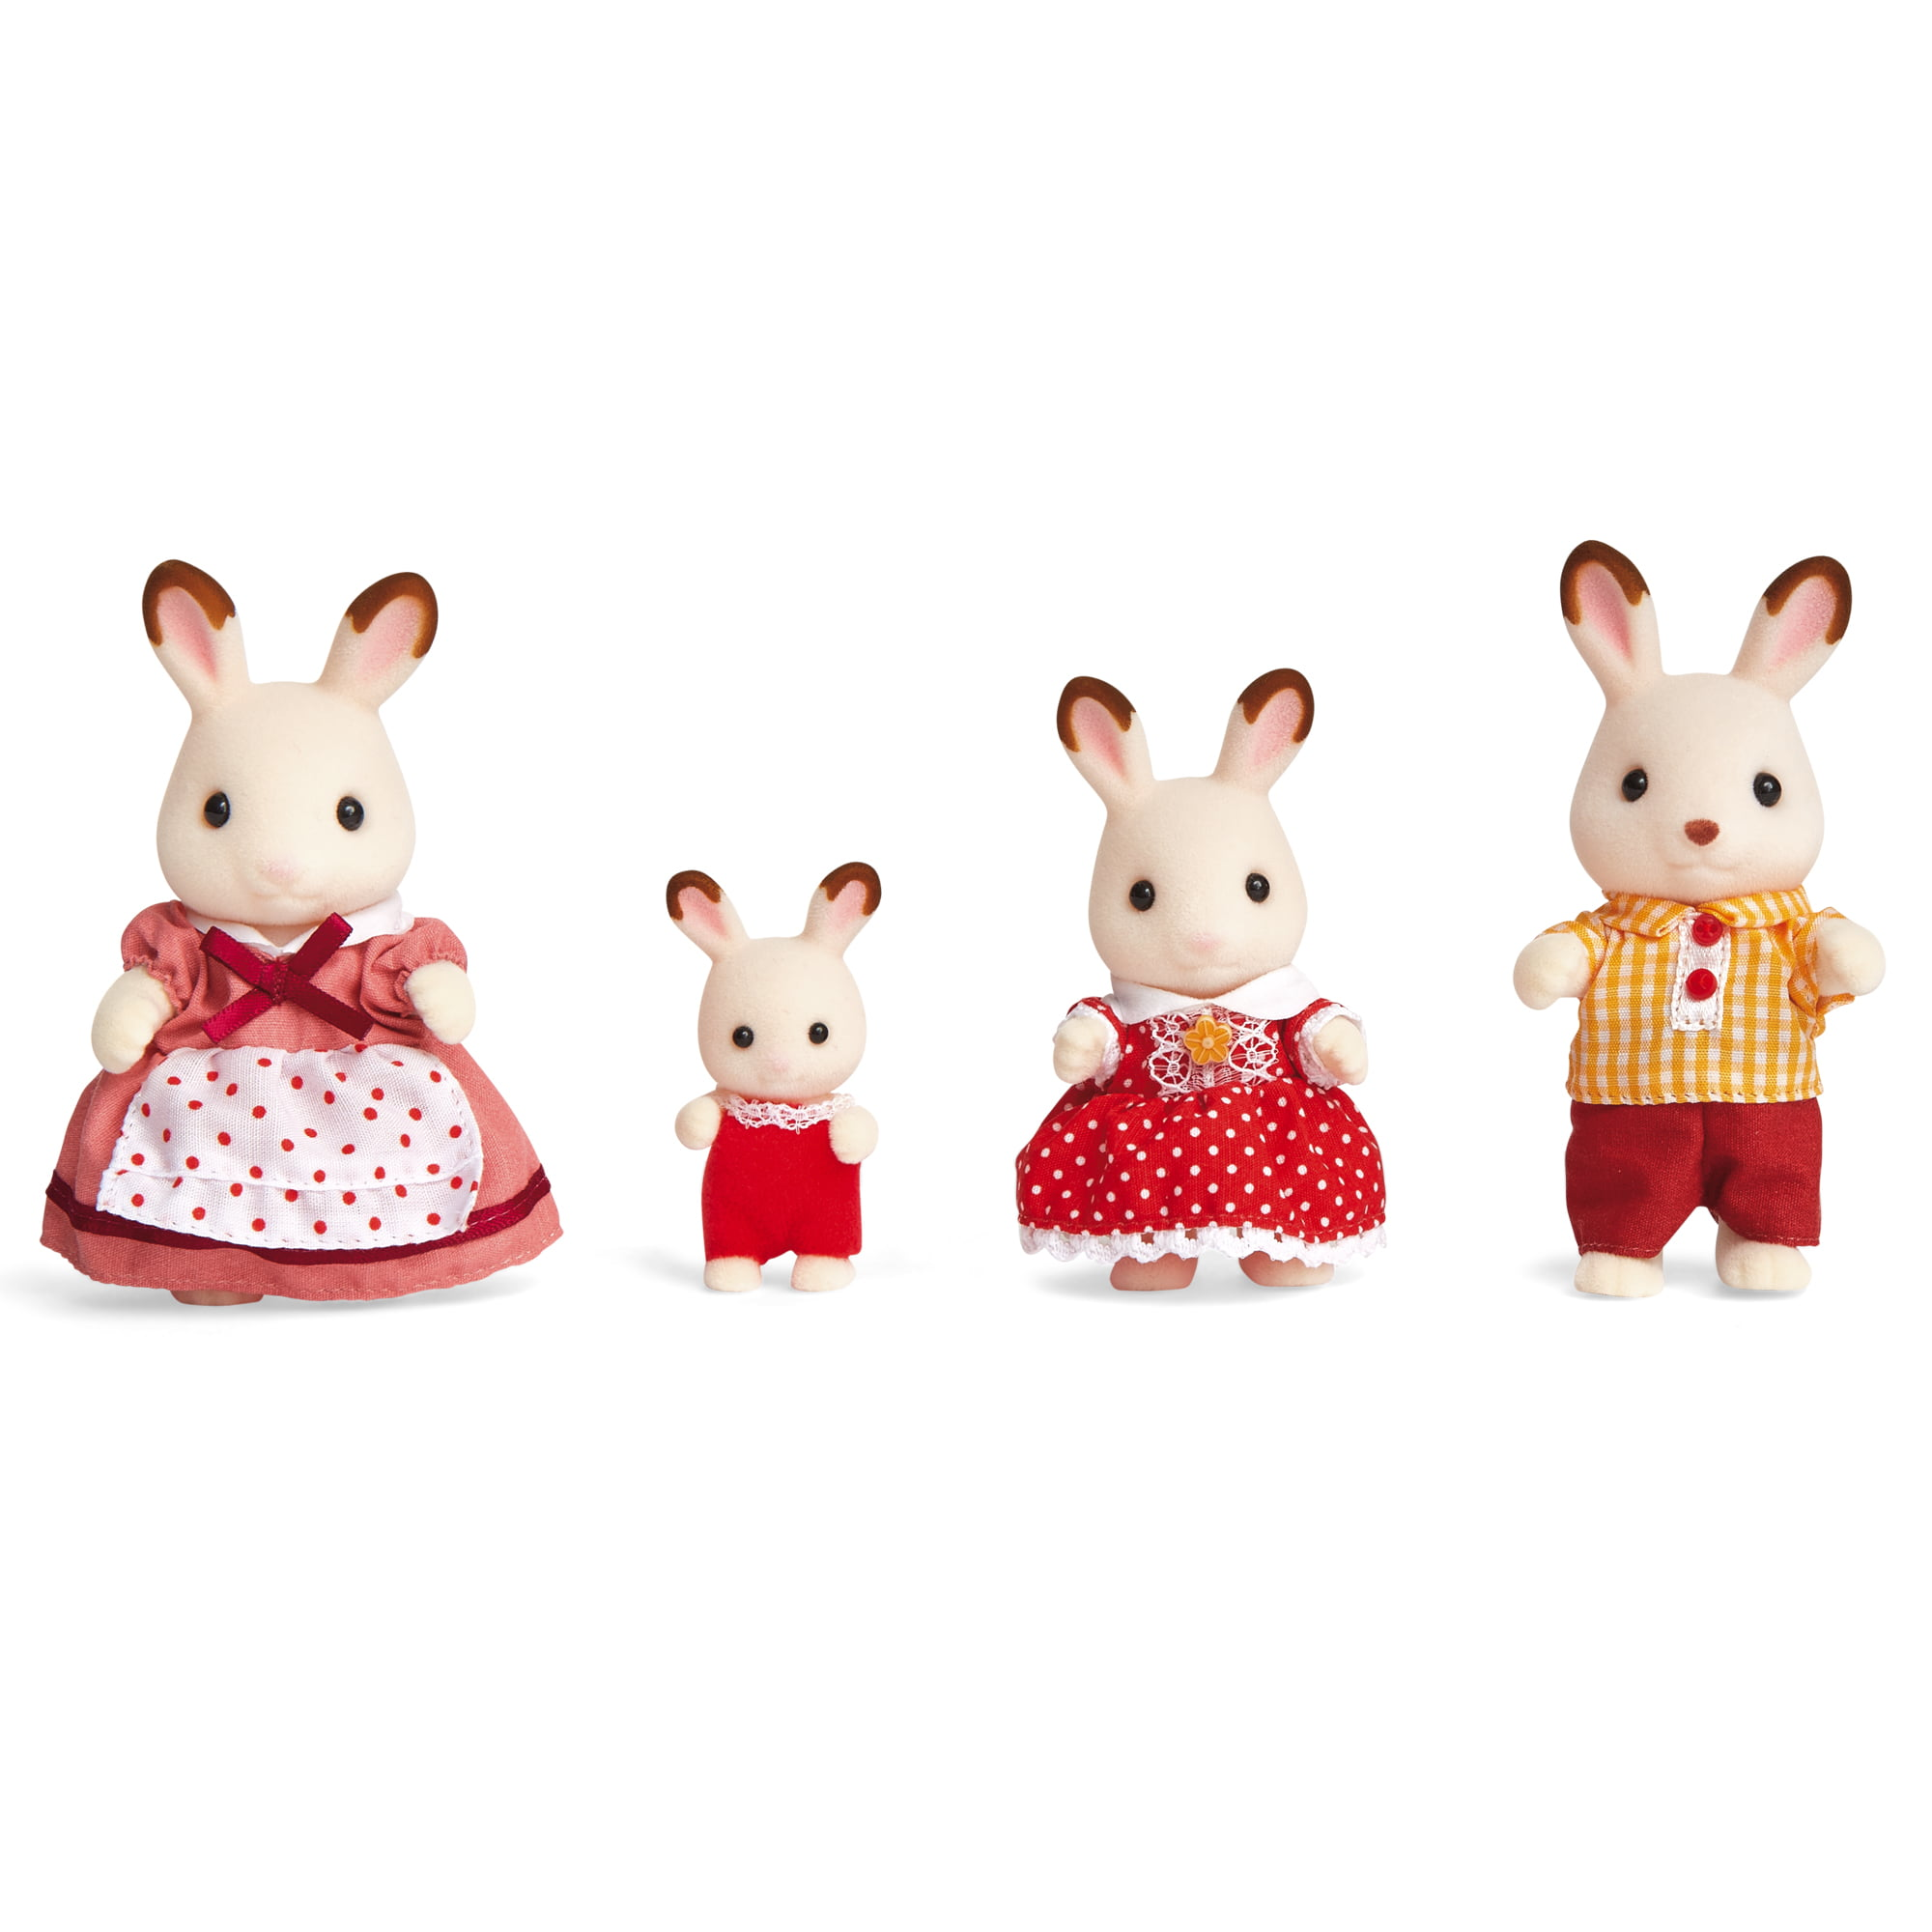 Calico Critters Callico Critters Hopscotch Rabbit Family - Walmart.com